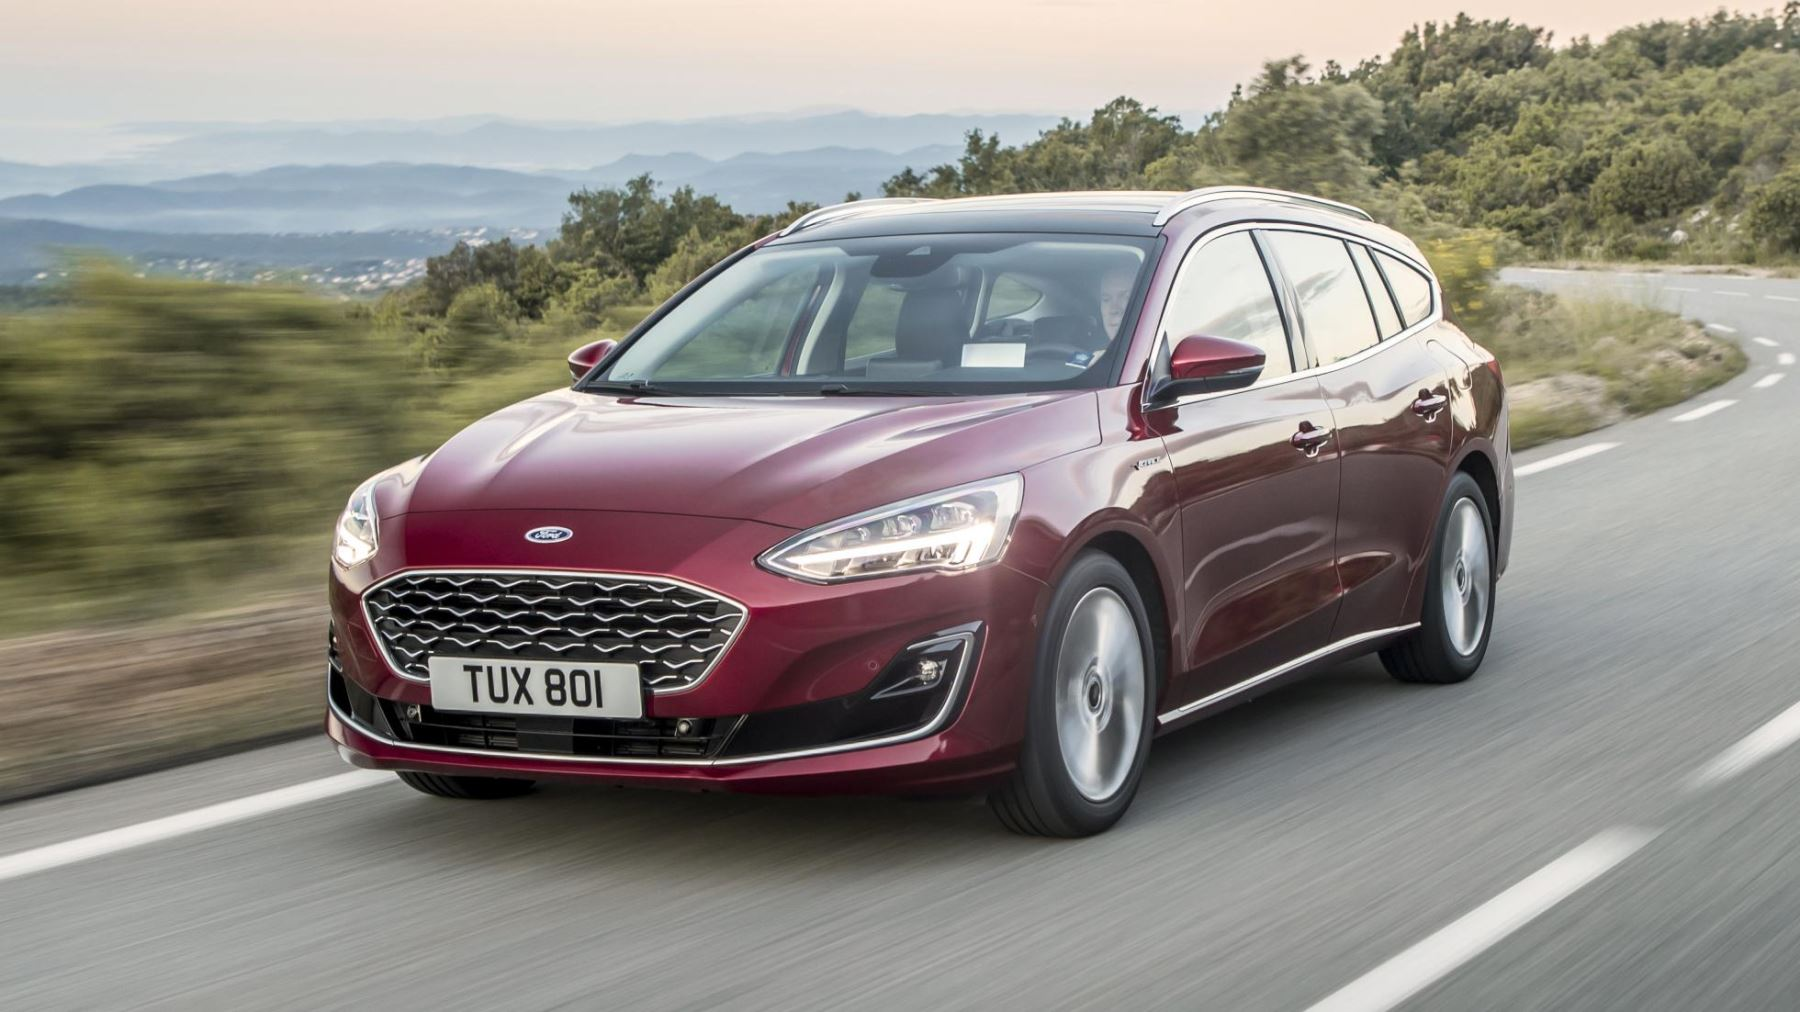 Ford Focus Active X 2.0 Diesel 150ps Diesel Automatic 5 door Estate (2019)